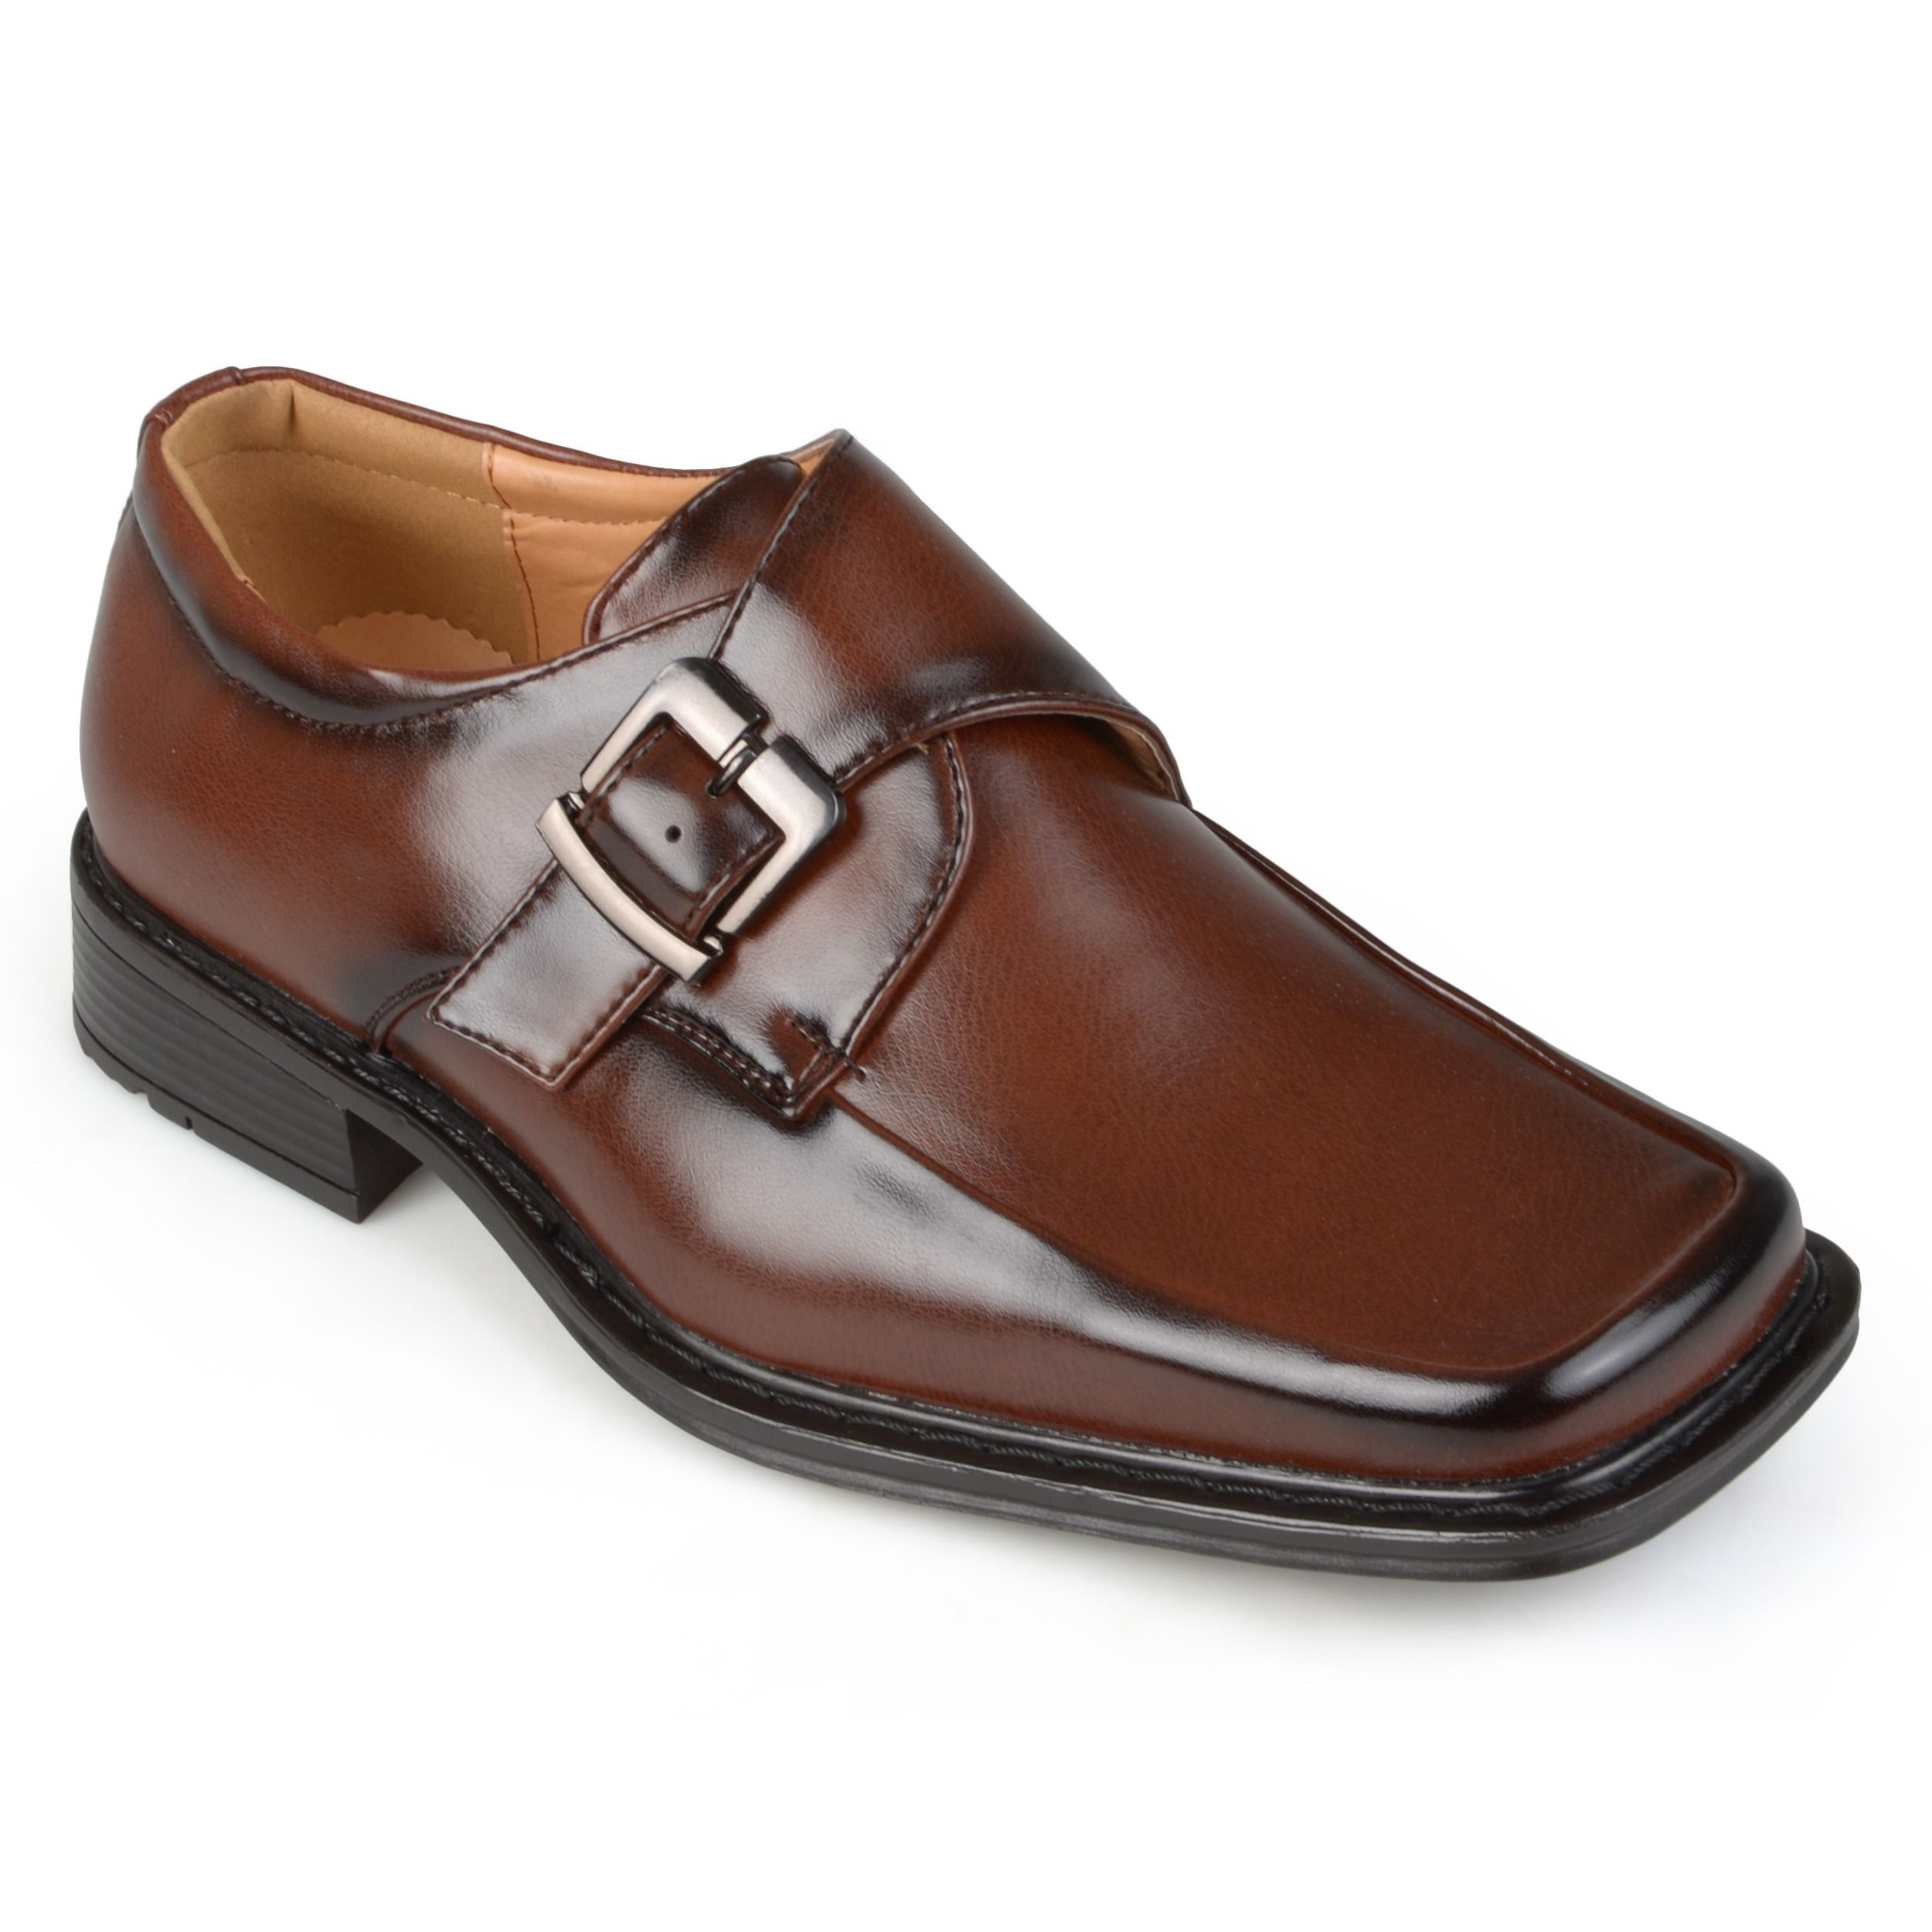 Create A Der Style With These Square Toe Dress Shoes By Boston Traveler Handsome Are Constructed Of Shiny Pu Faux Leather Uppers And